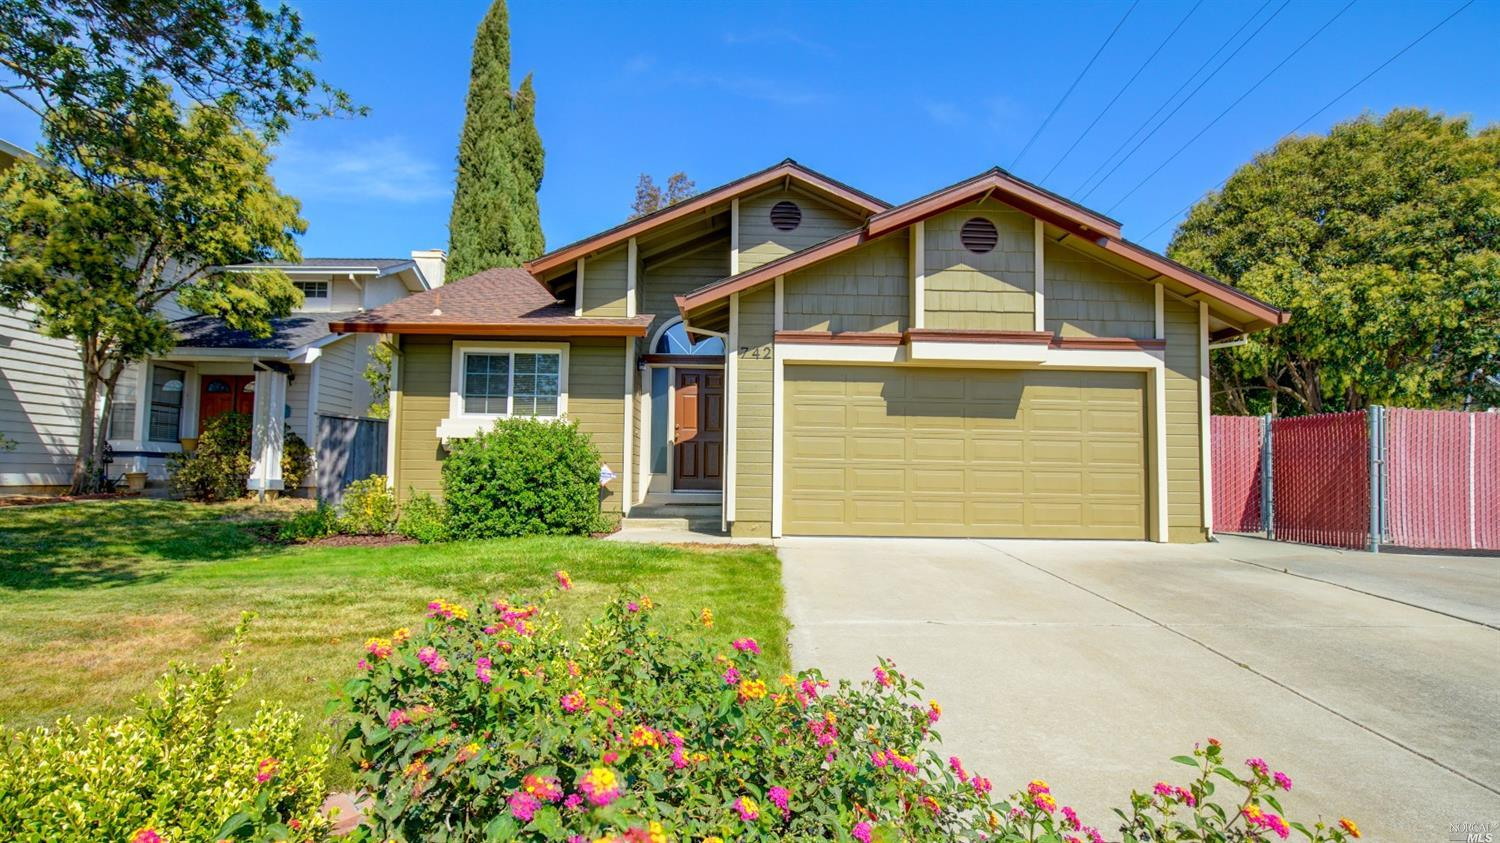 Beautifully remodeled, move-in ready single story home in Cordelia Villages. Near park, schools and